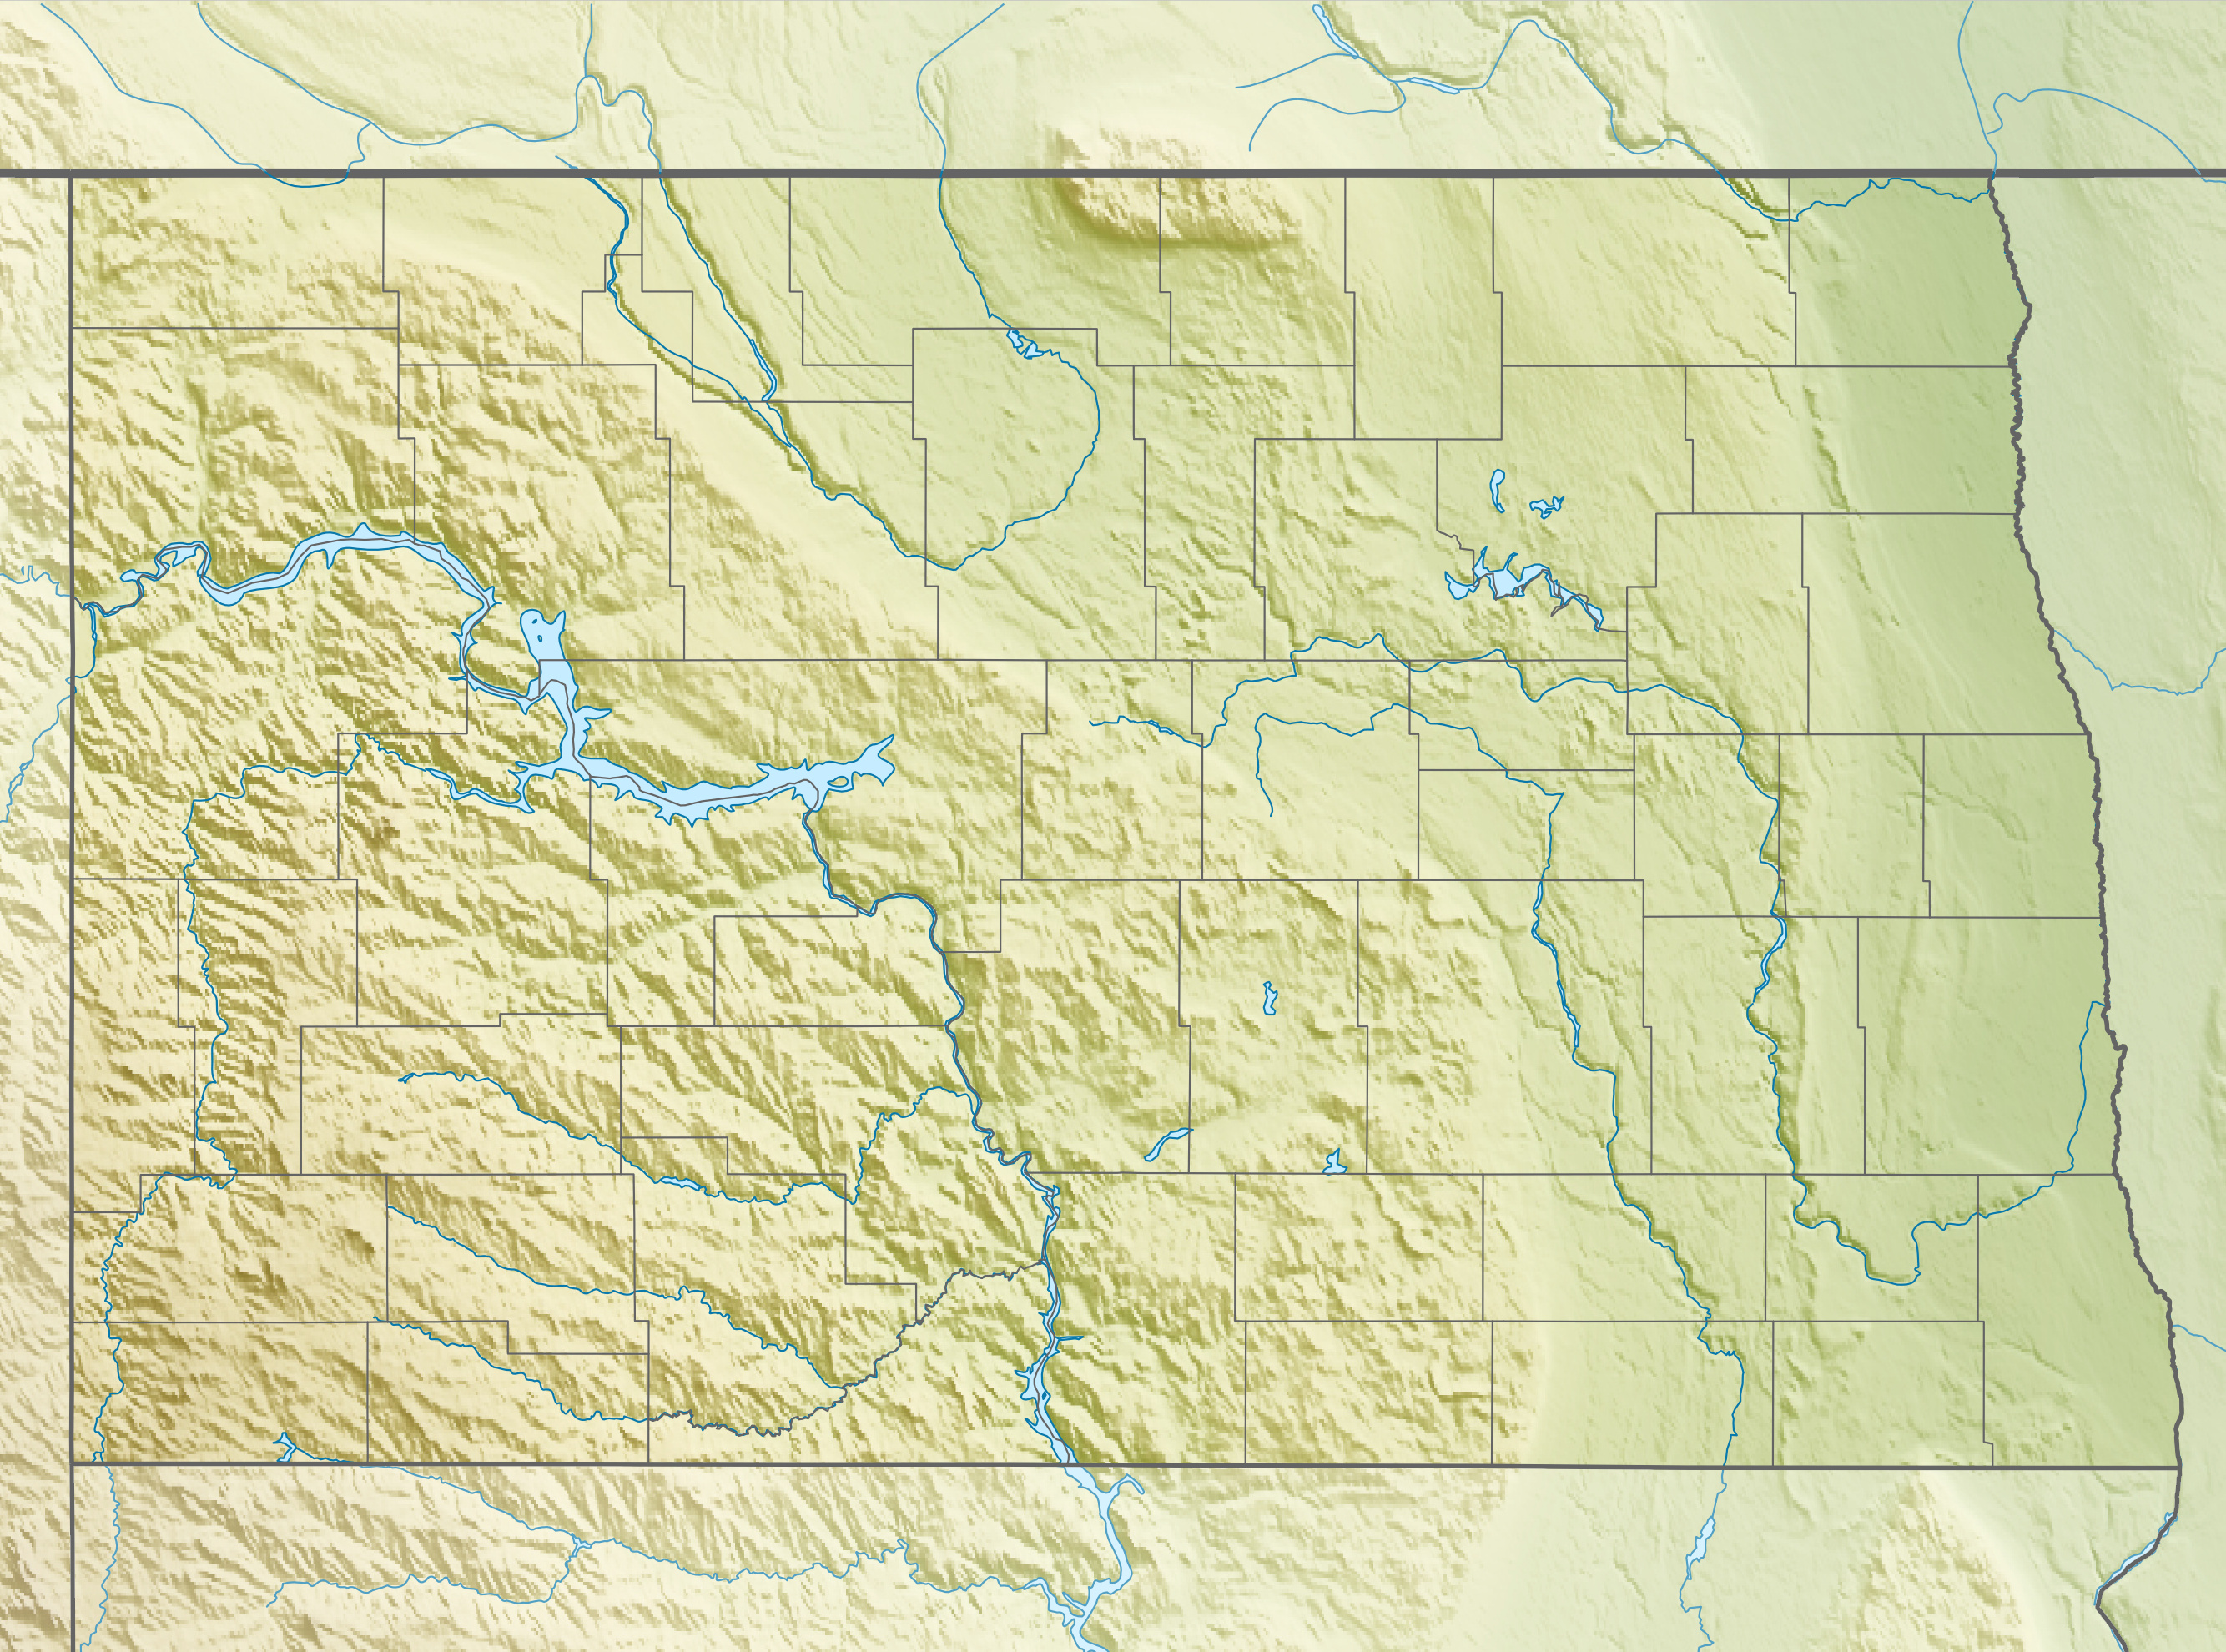 Datei:USA North Dakota relief location map.jpg – Wikipedia